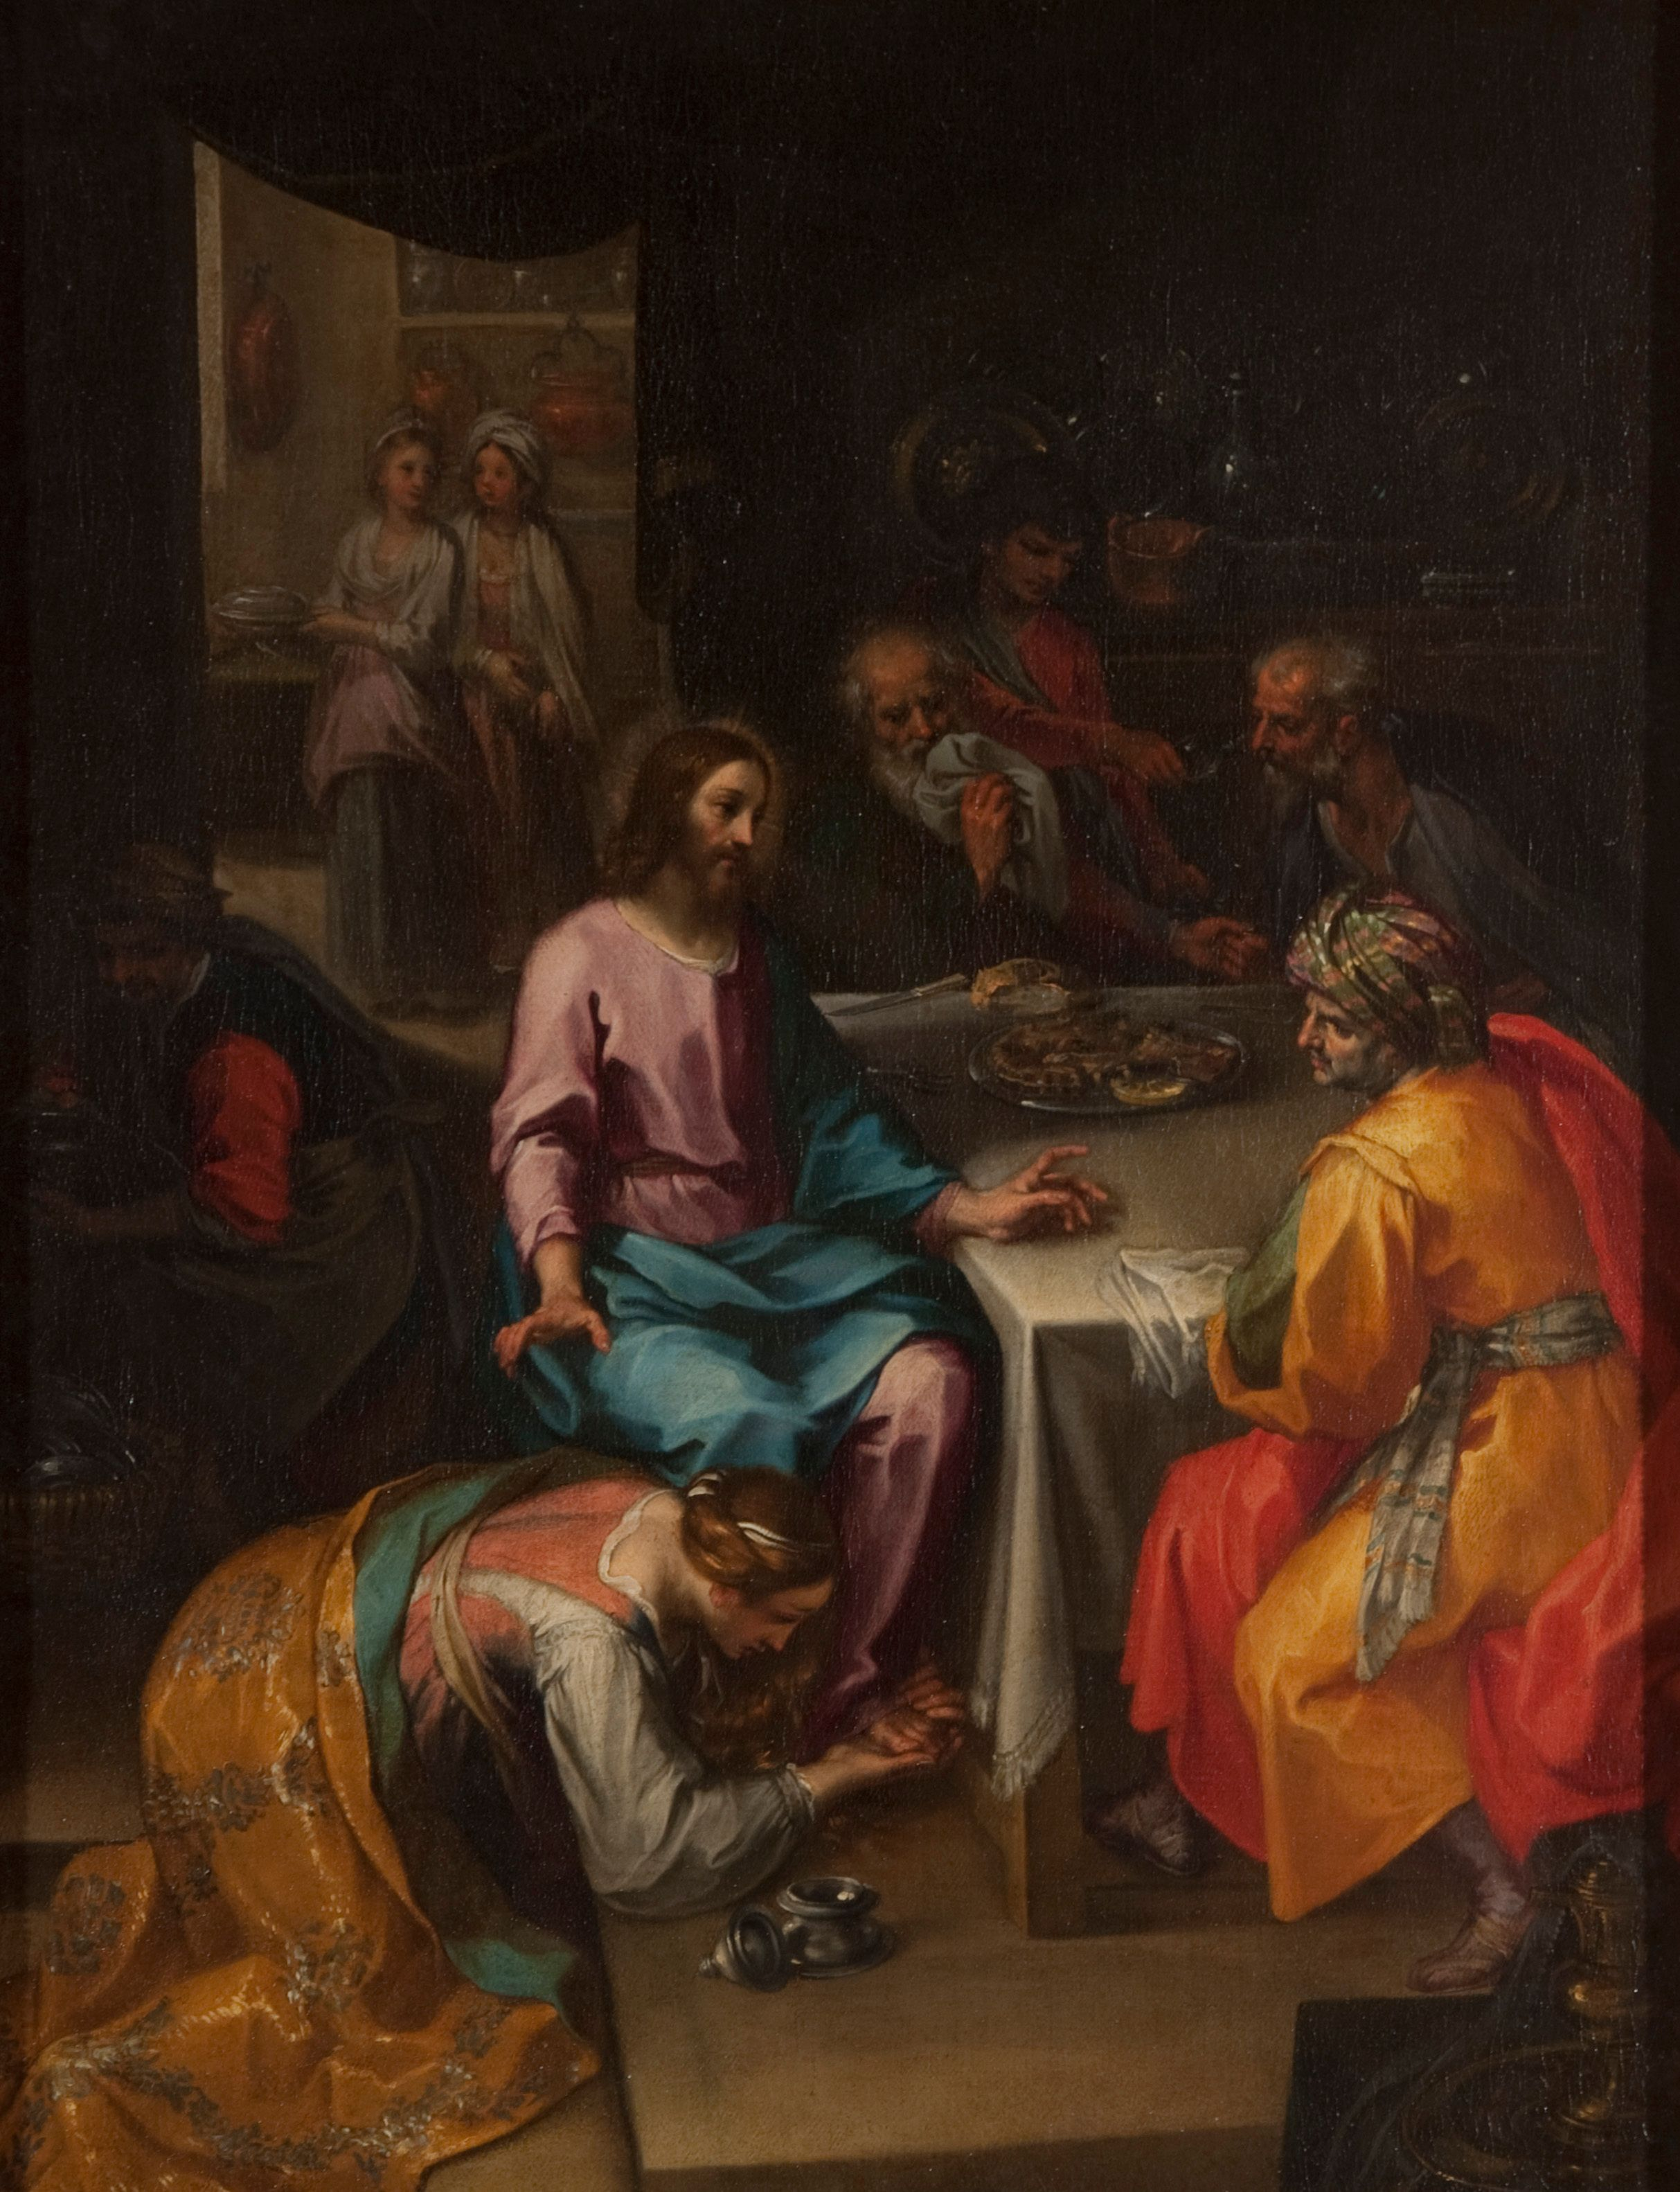 Undefined, Christ in the House of Simon the Pharisee, ca. 1600, oil on canvas. Snite Museum of Art, University of Notre Dame. Gift of Mr. and Mrs. Robert B. Mayer, 1962.007.